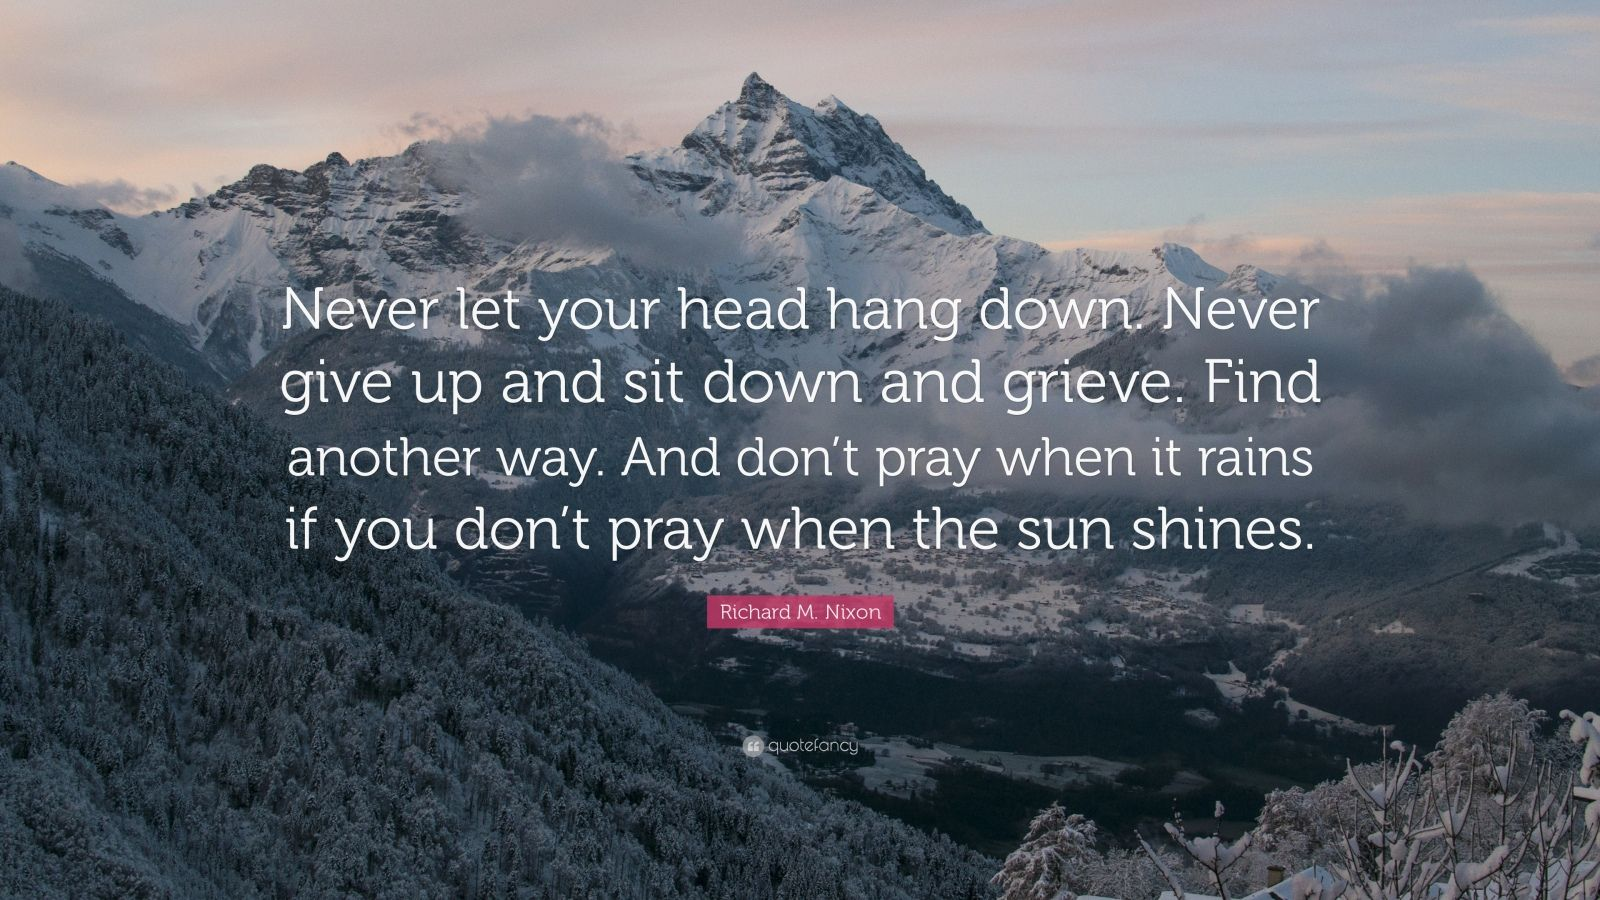 """Richard M. Nixon Quote: """"Never let your head hang down. Never give up and sit down and grieve. Find another way. And don't pray when it rains if you don't pray when the sun shines."""""""